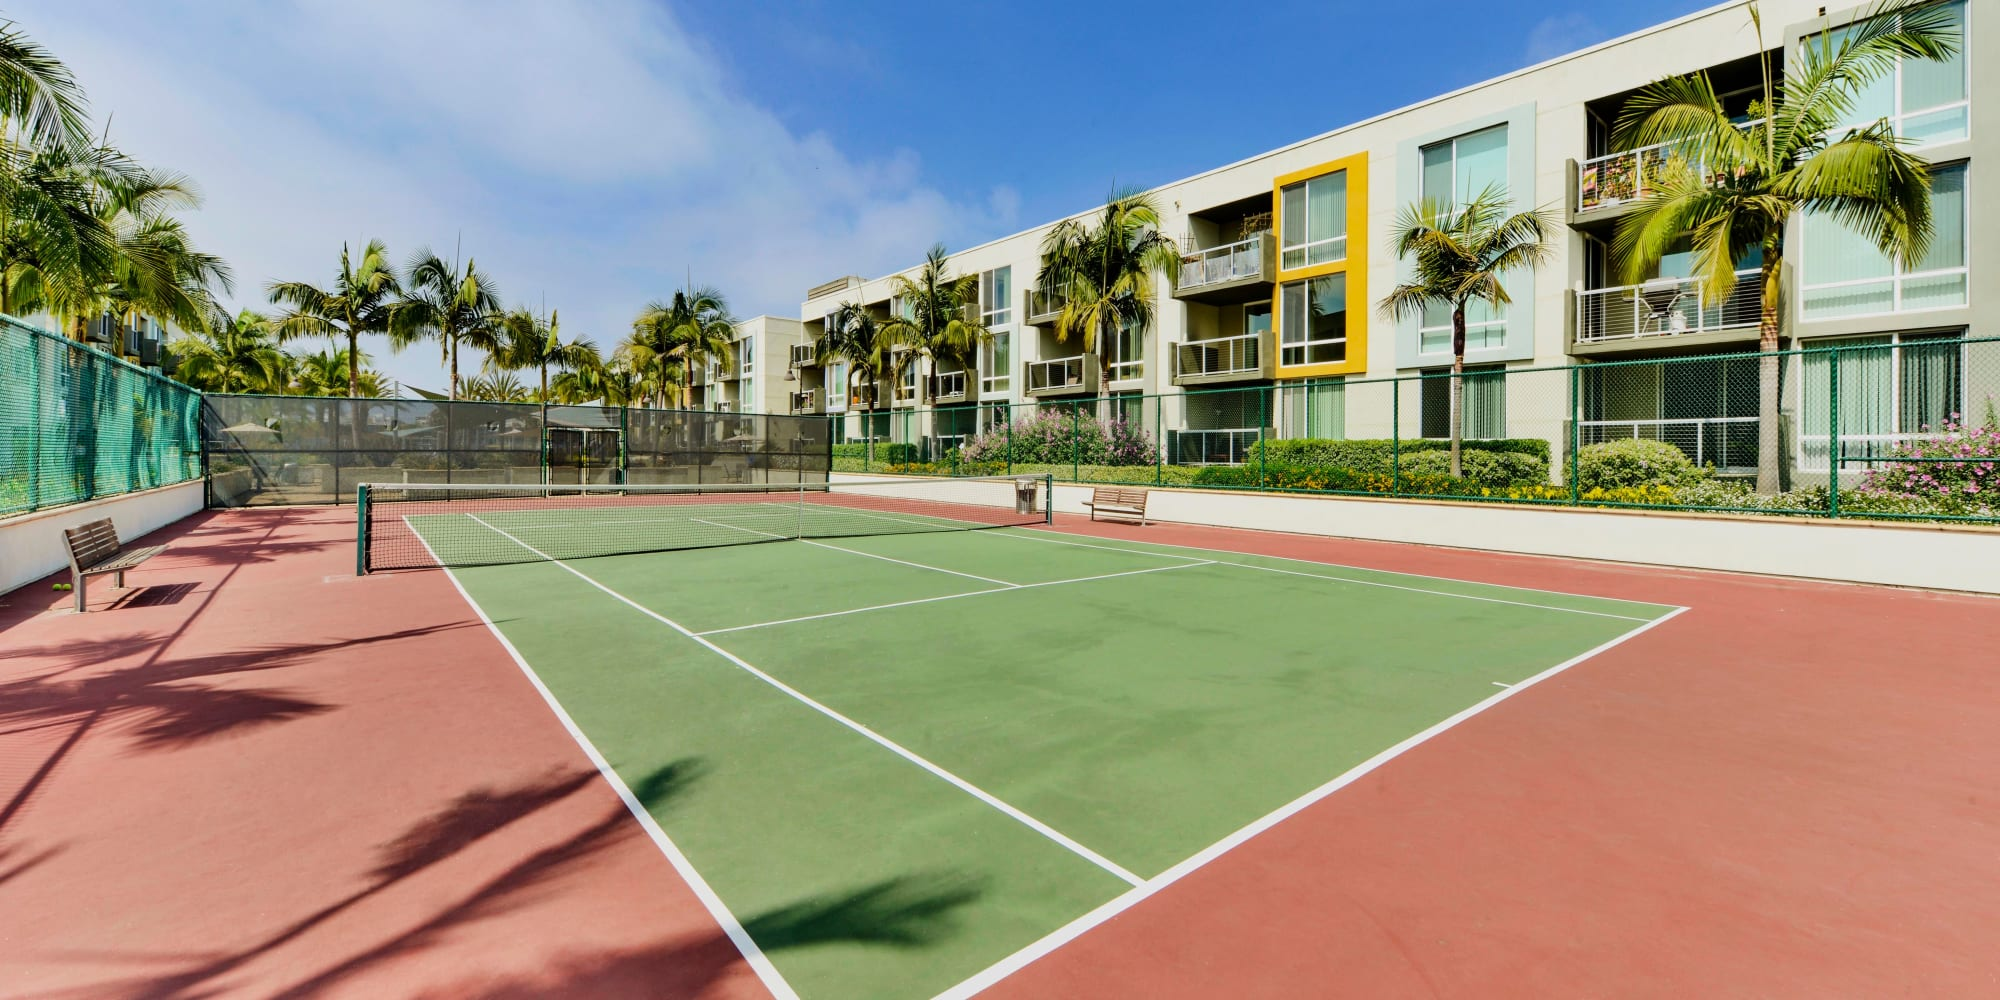 Well-maintained onsite tennis courts at The Villa at Marina Harbor in Marina del Rey, California